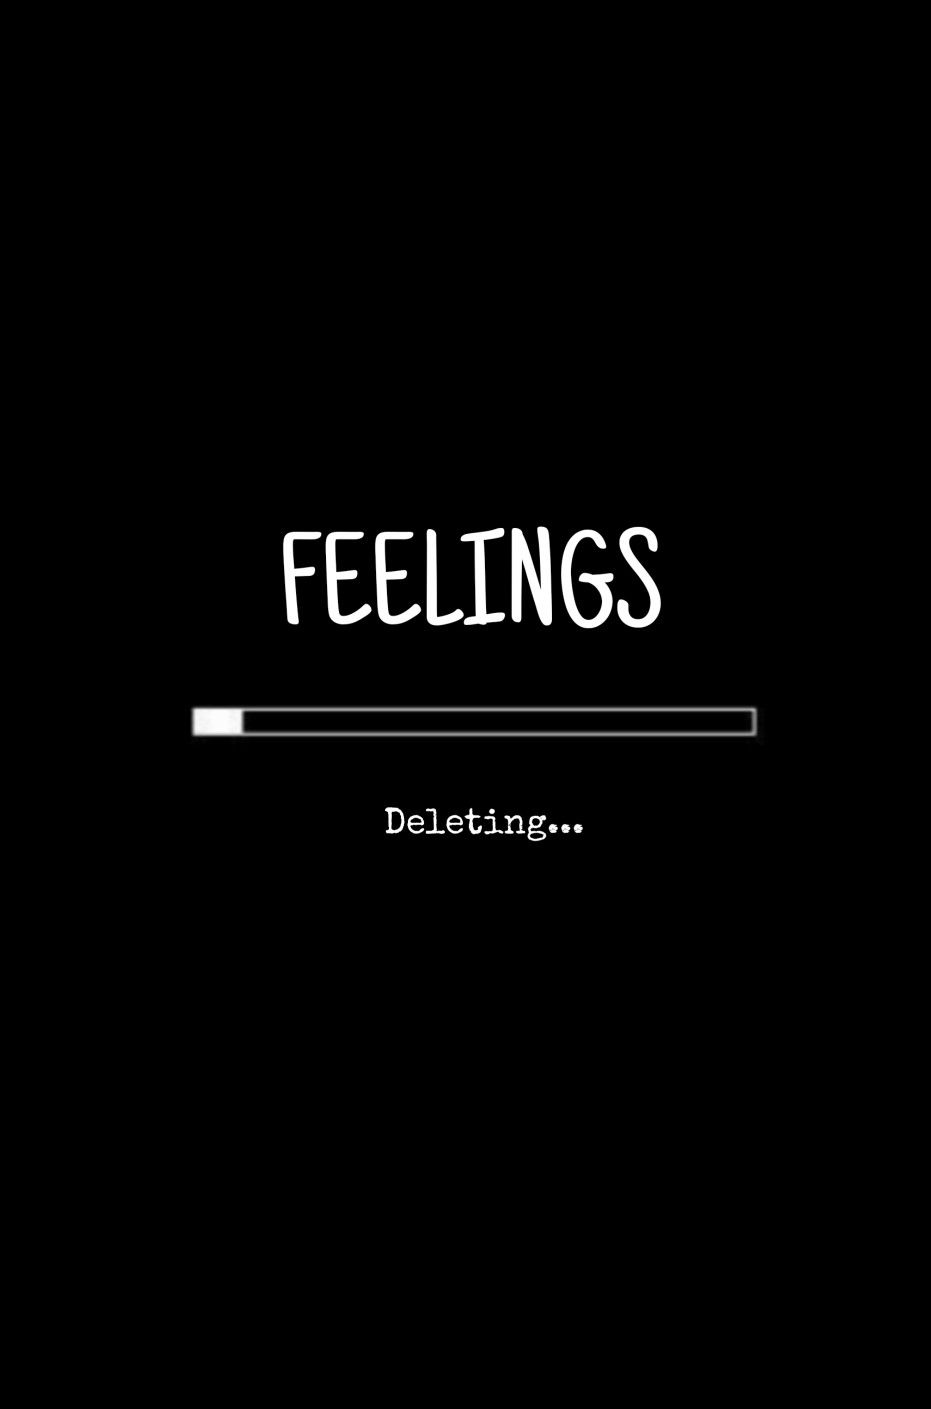 Pin By Napatsorn Jaikid On Icloud Funny Phone Wallpaper Mood Quotes Funny Iphone Wallpaper